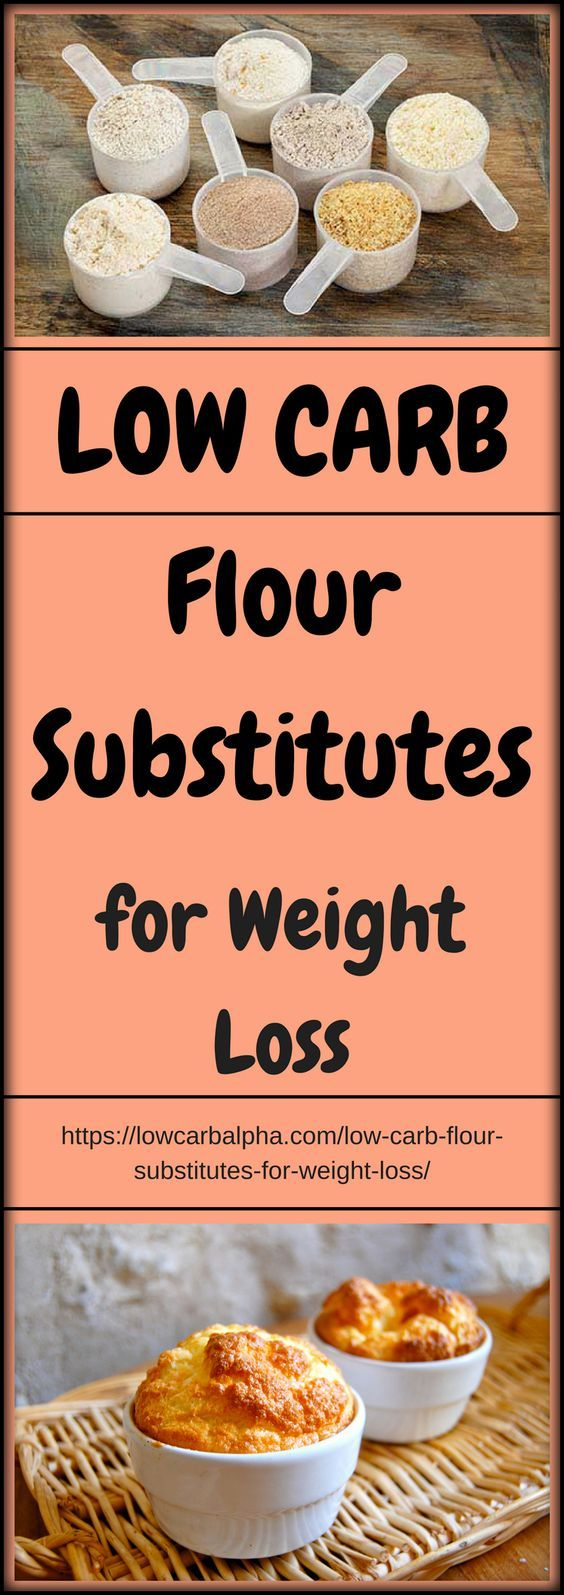 Low Carb Flour Substitutes For Weight Loss https://lowcarbalpha.com/low-carb-flour-substitutes-for-weight-loss/ Lowcarb flours gives you the freedom to enjoy baked goods while maintaining your carb intake under check. Nuts and Seed flour come from grain-f